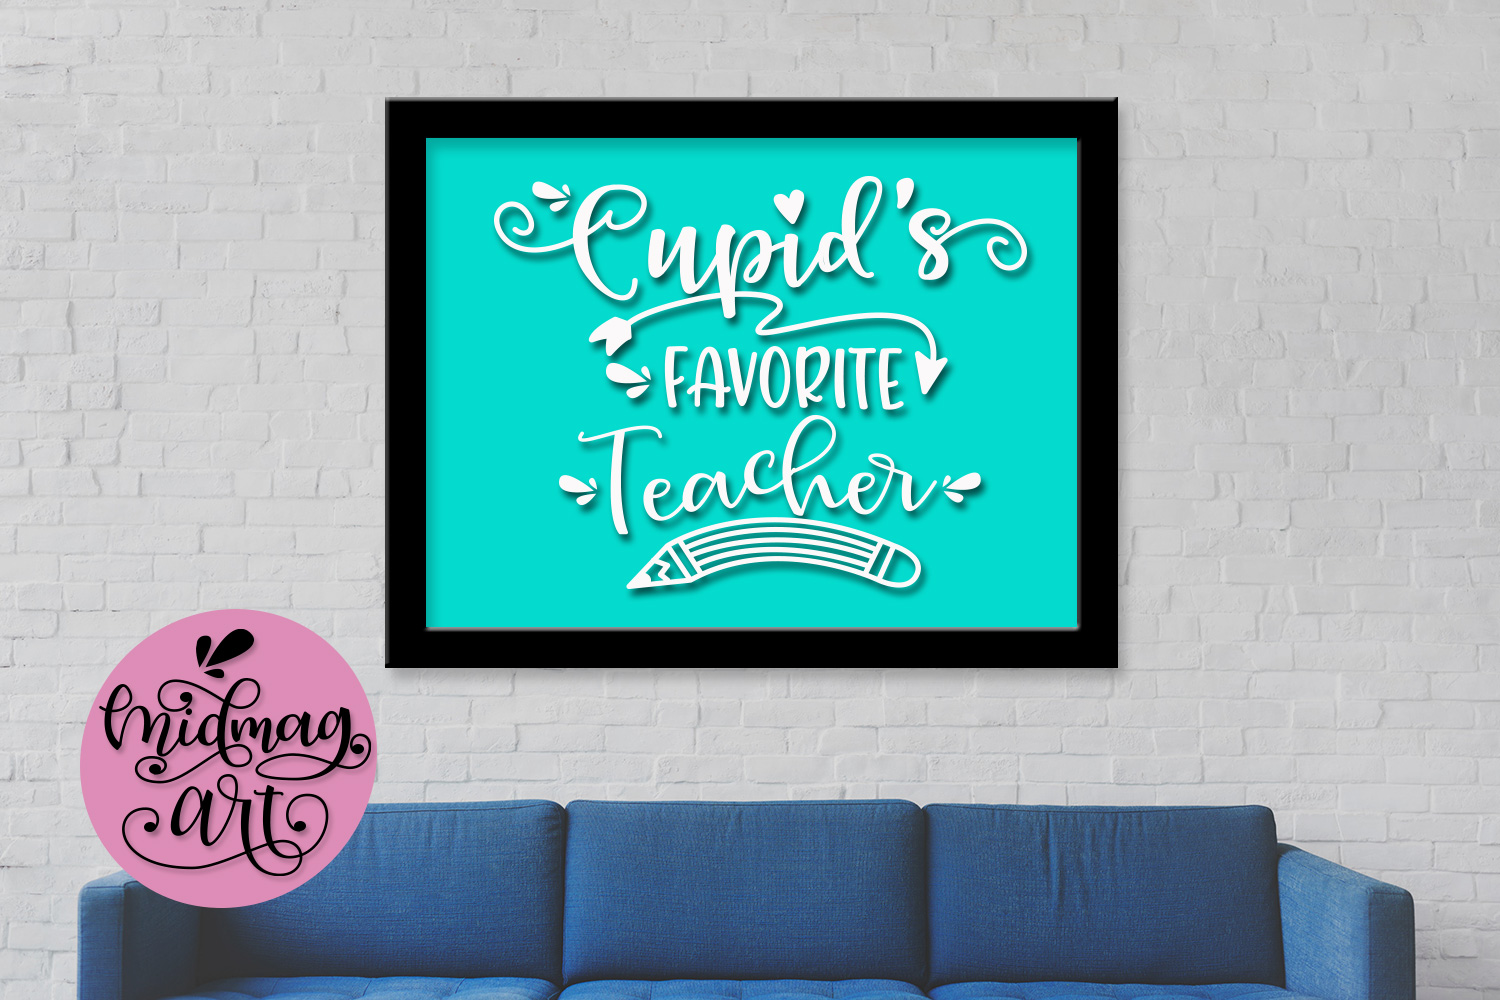 Cupids's favorite Teacher svg, png, jpeg, eps and dxf example image 3